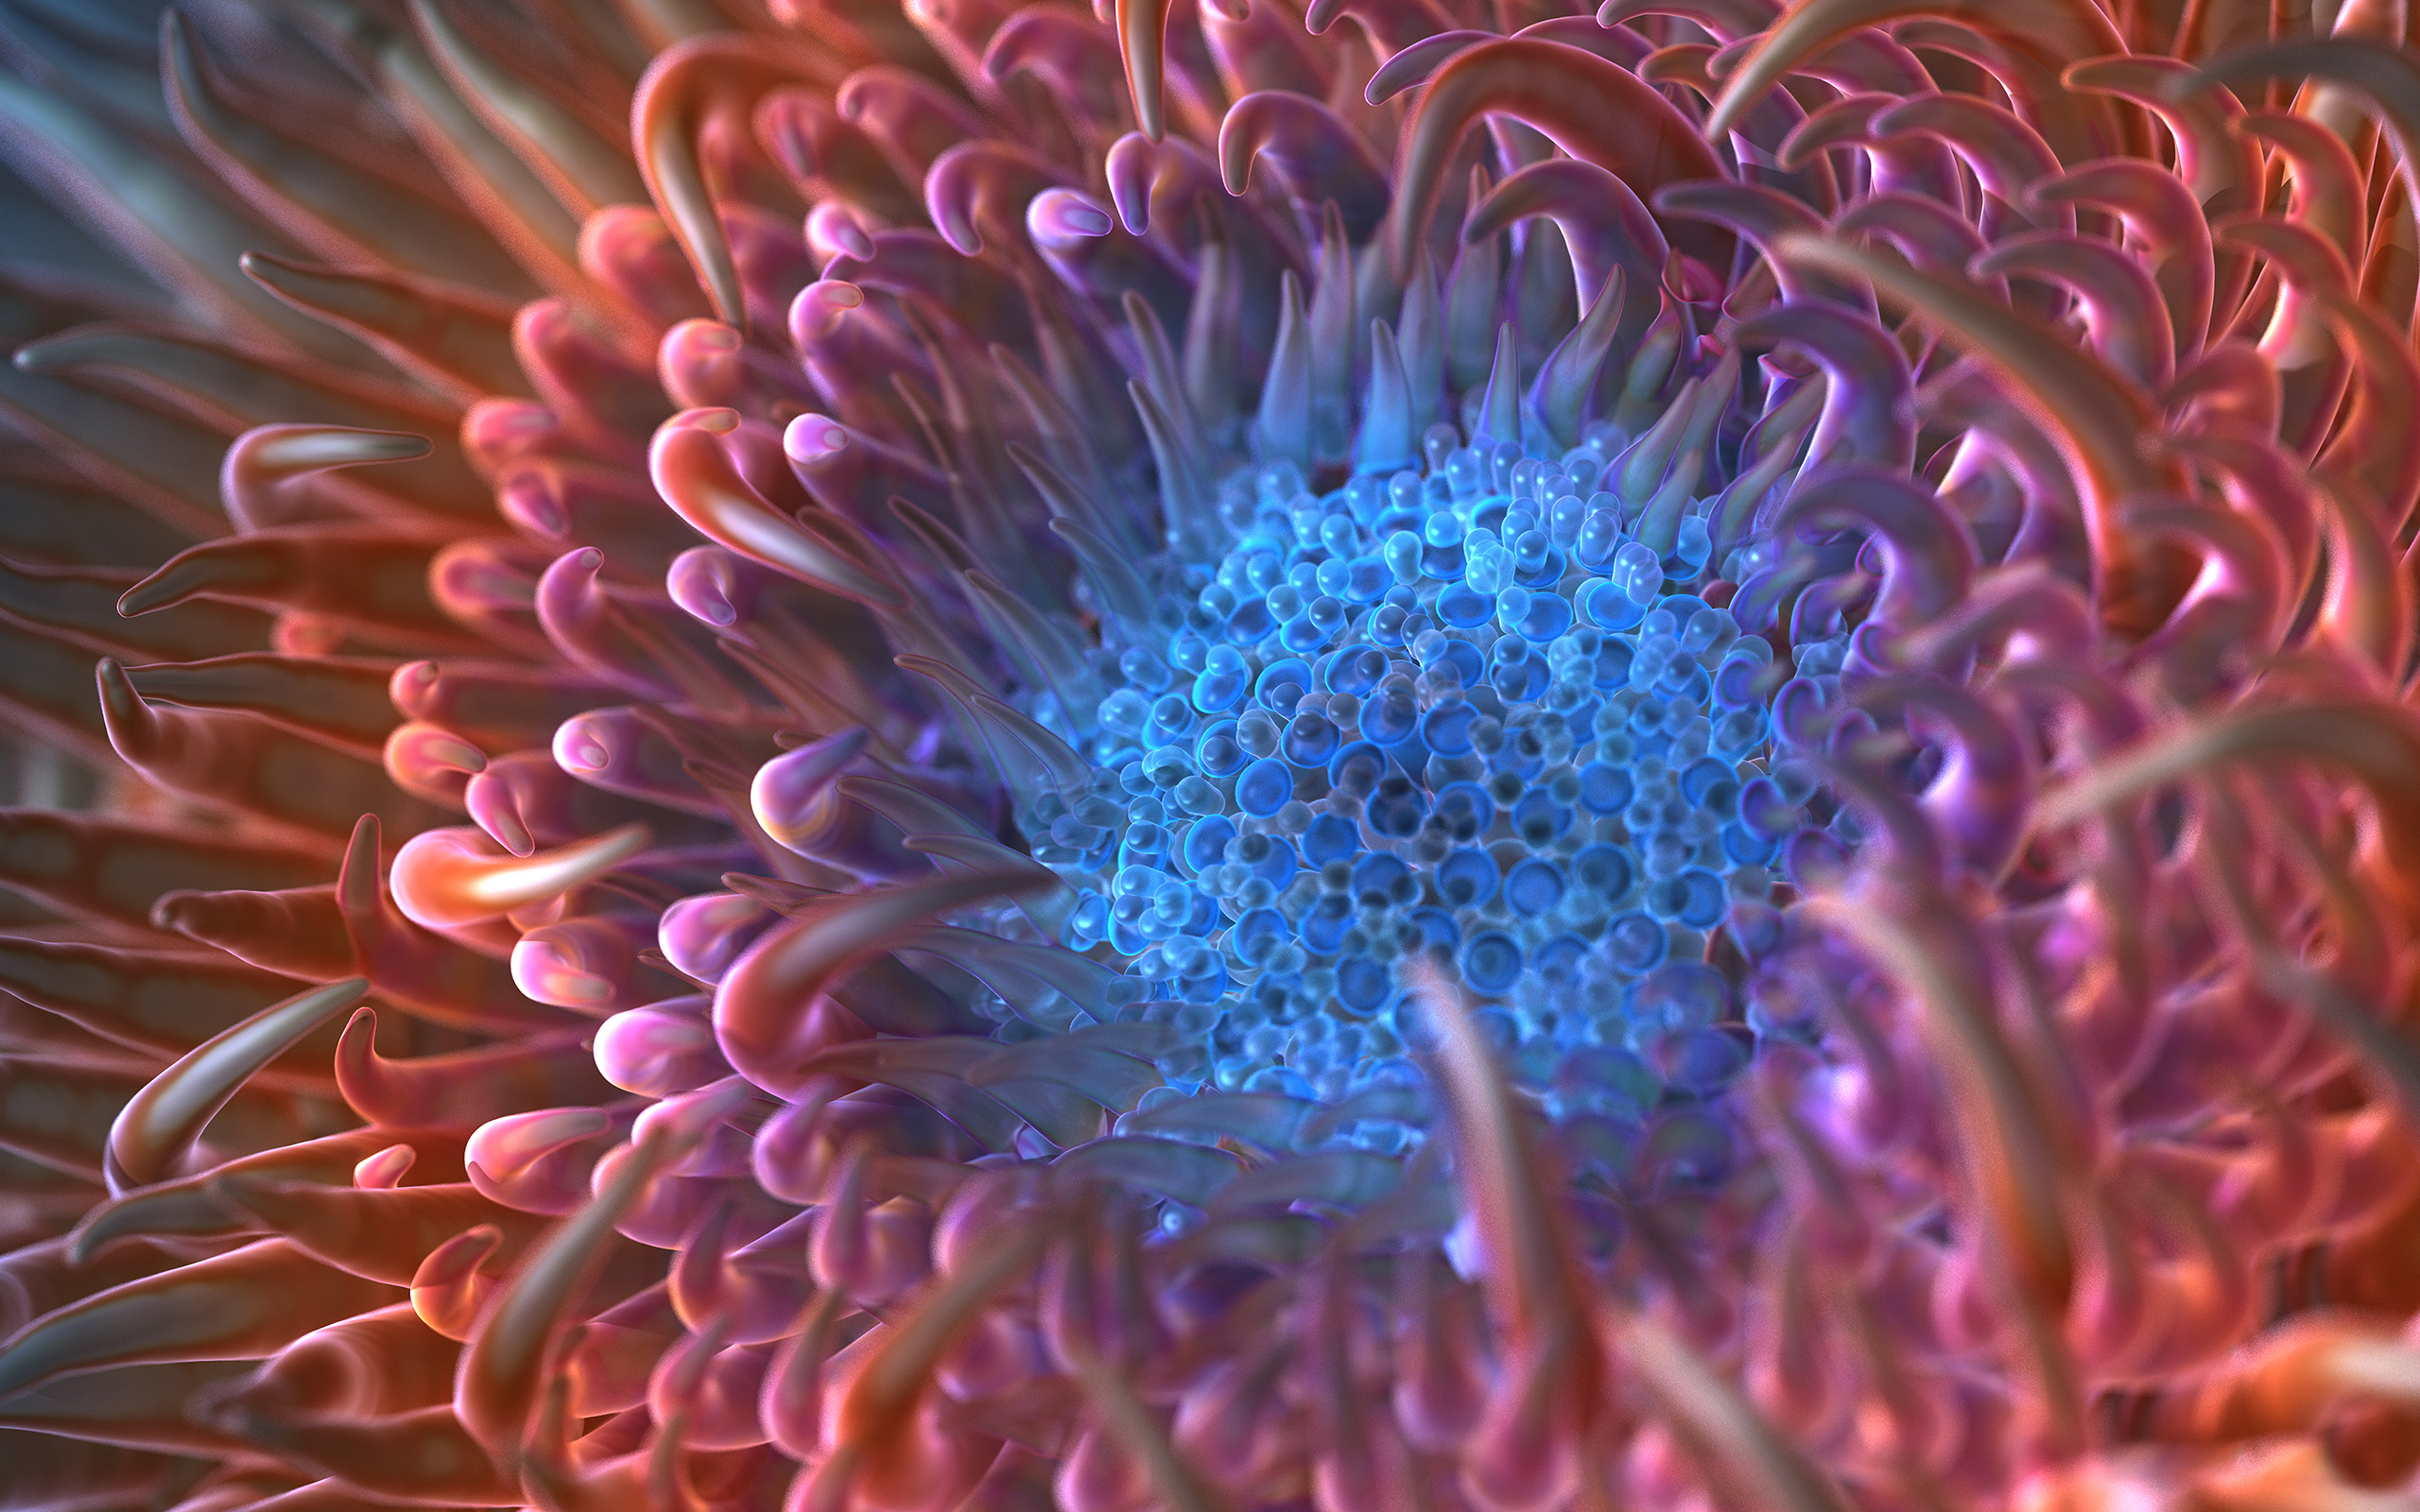 Digital Anemone Flower